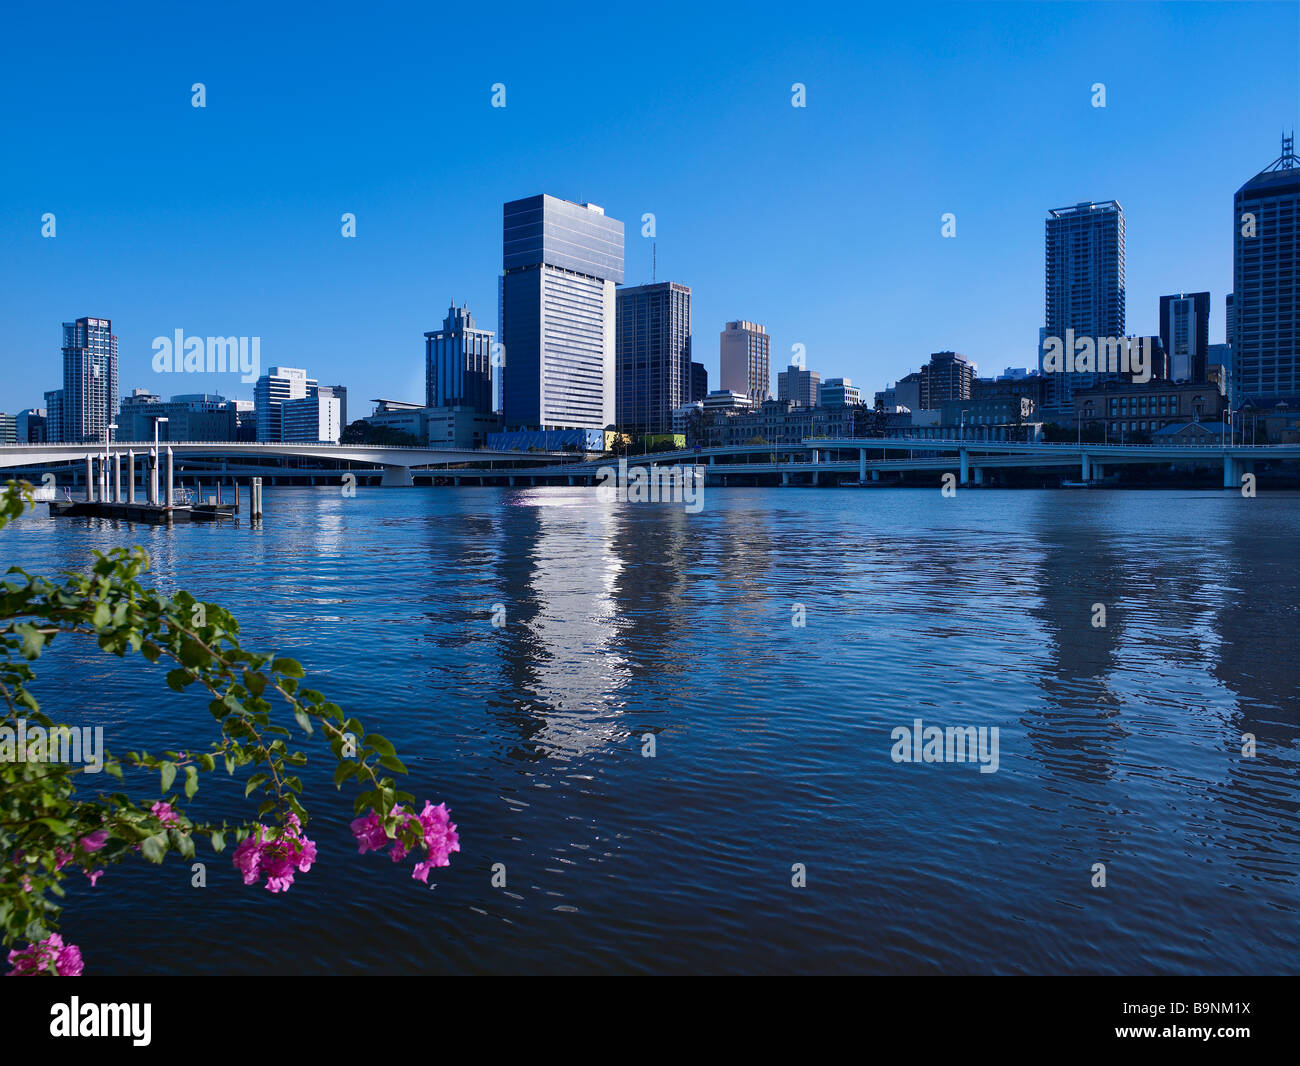 Brisbane City, Riverside Expressway & Victoria Bridge Queensland Australia - Stock Image